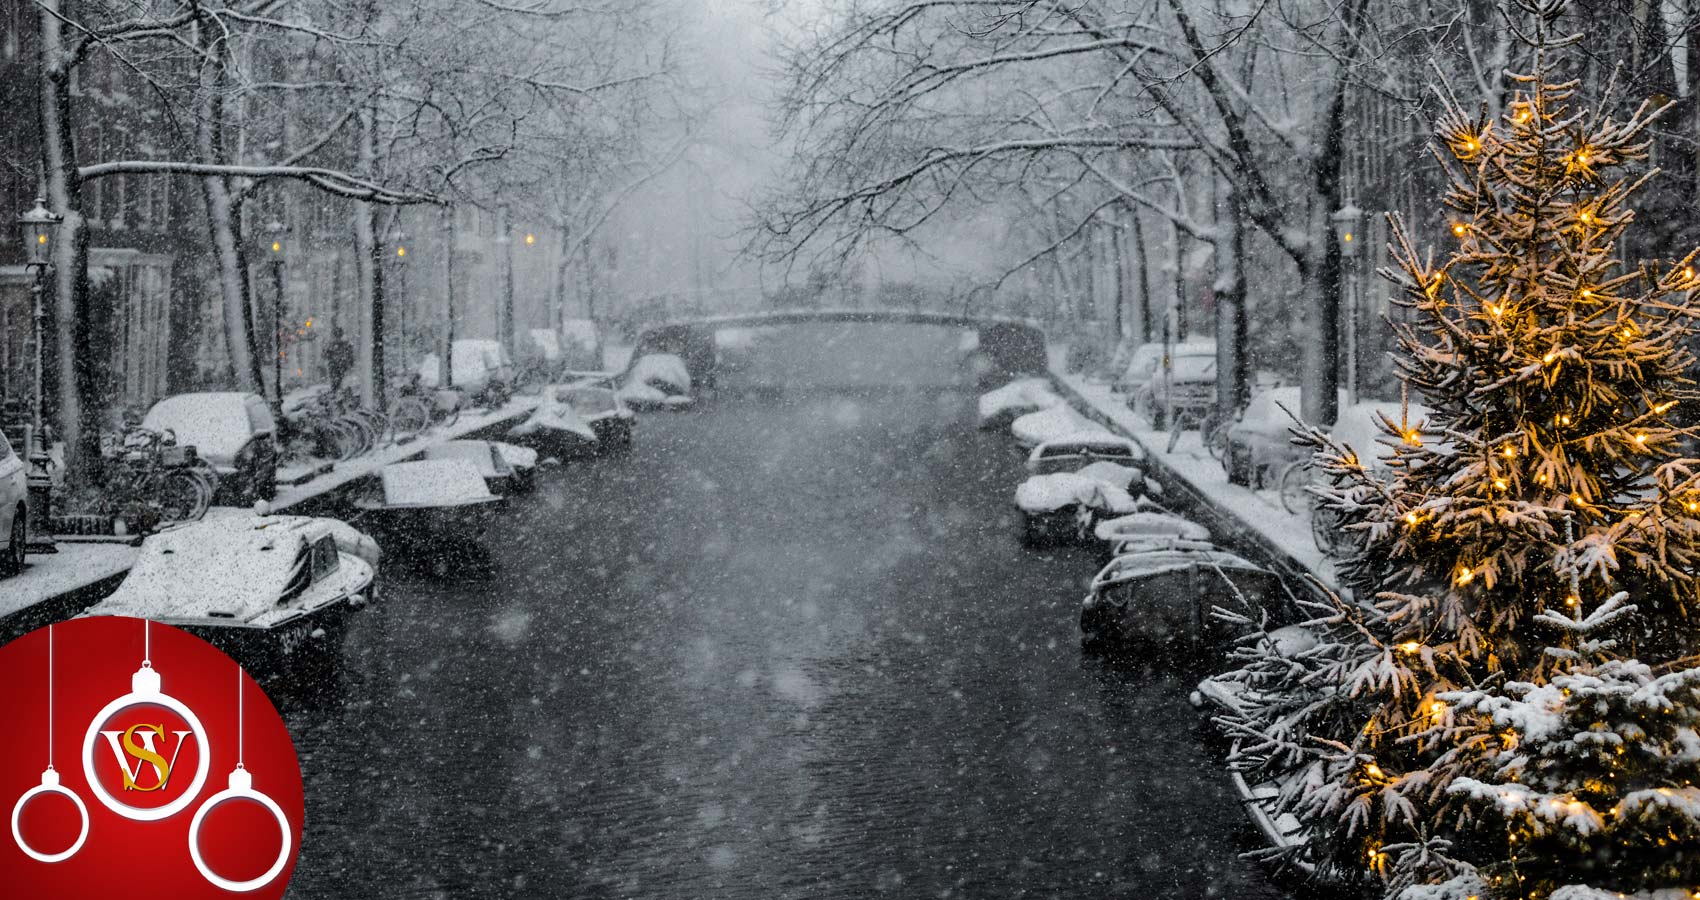 White Christmas, a poem by Thaddeus Hutyra at Spillwords.com